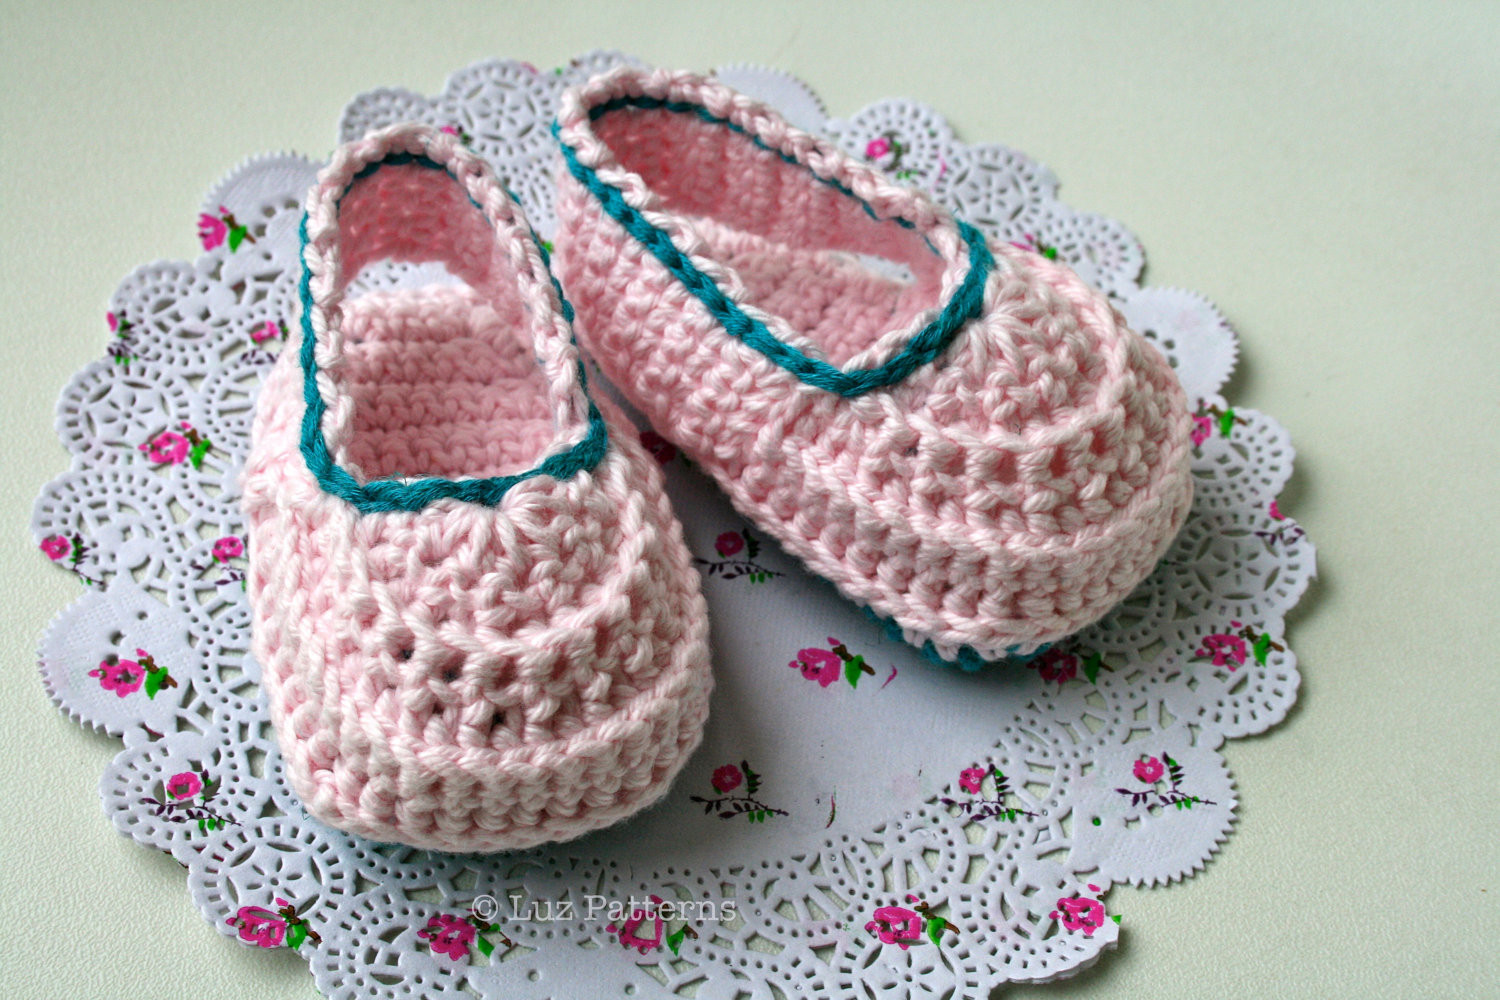 Free Crochet Patterns for Baby Shoes Unique Free Crochet Baby Shoes Patterns Pinterest Of Wonderful 50 Photos Free Crochet Patterns for Baby Shoes